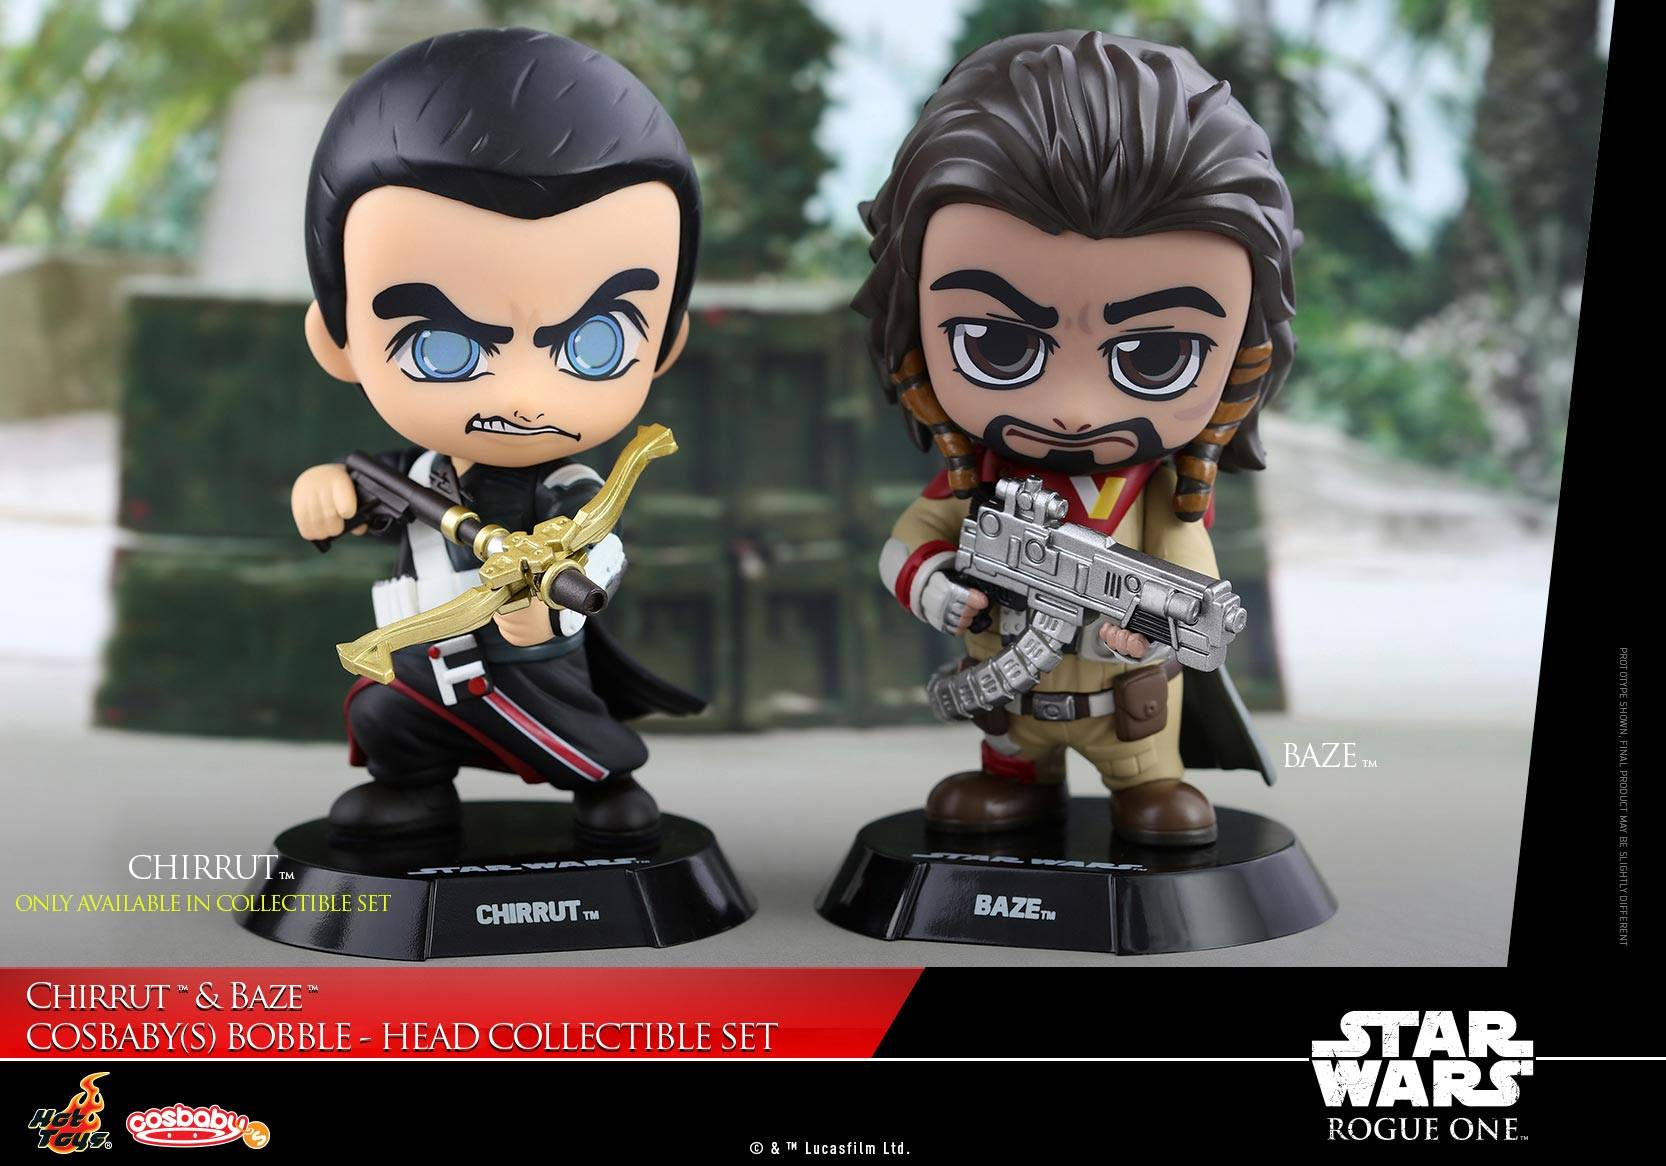 Rogue One – Chirrut & Baze Cosbaby Bobble-Heads Coming Soon